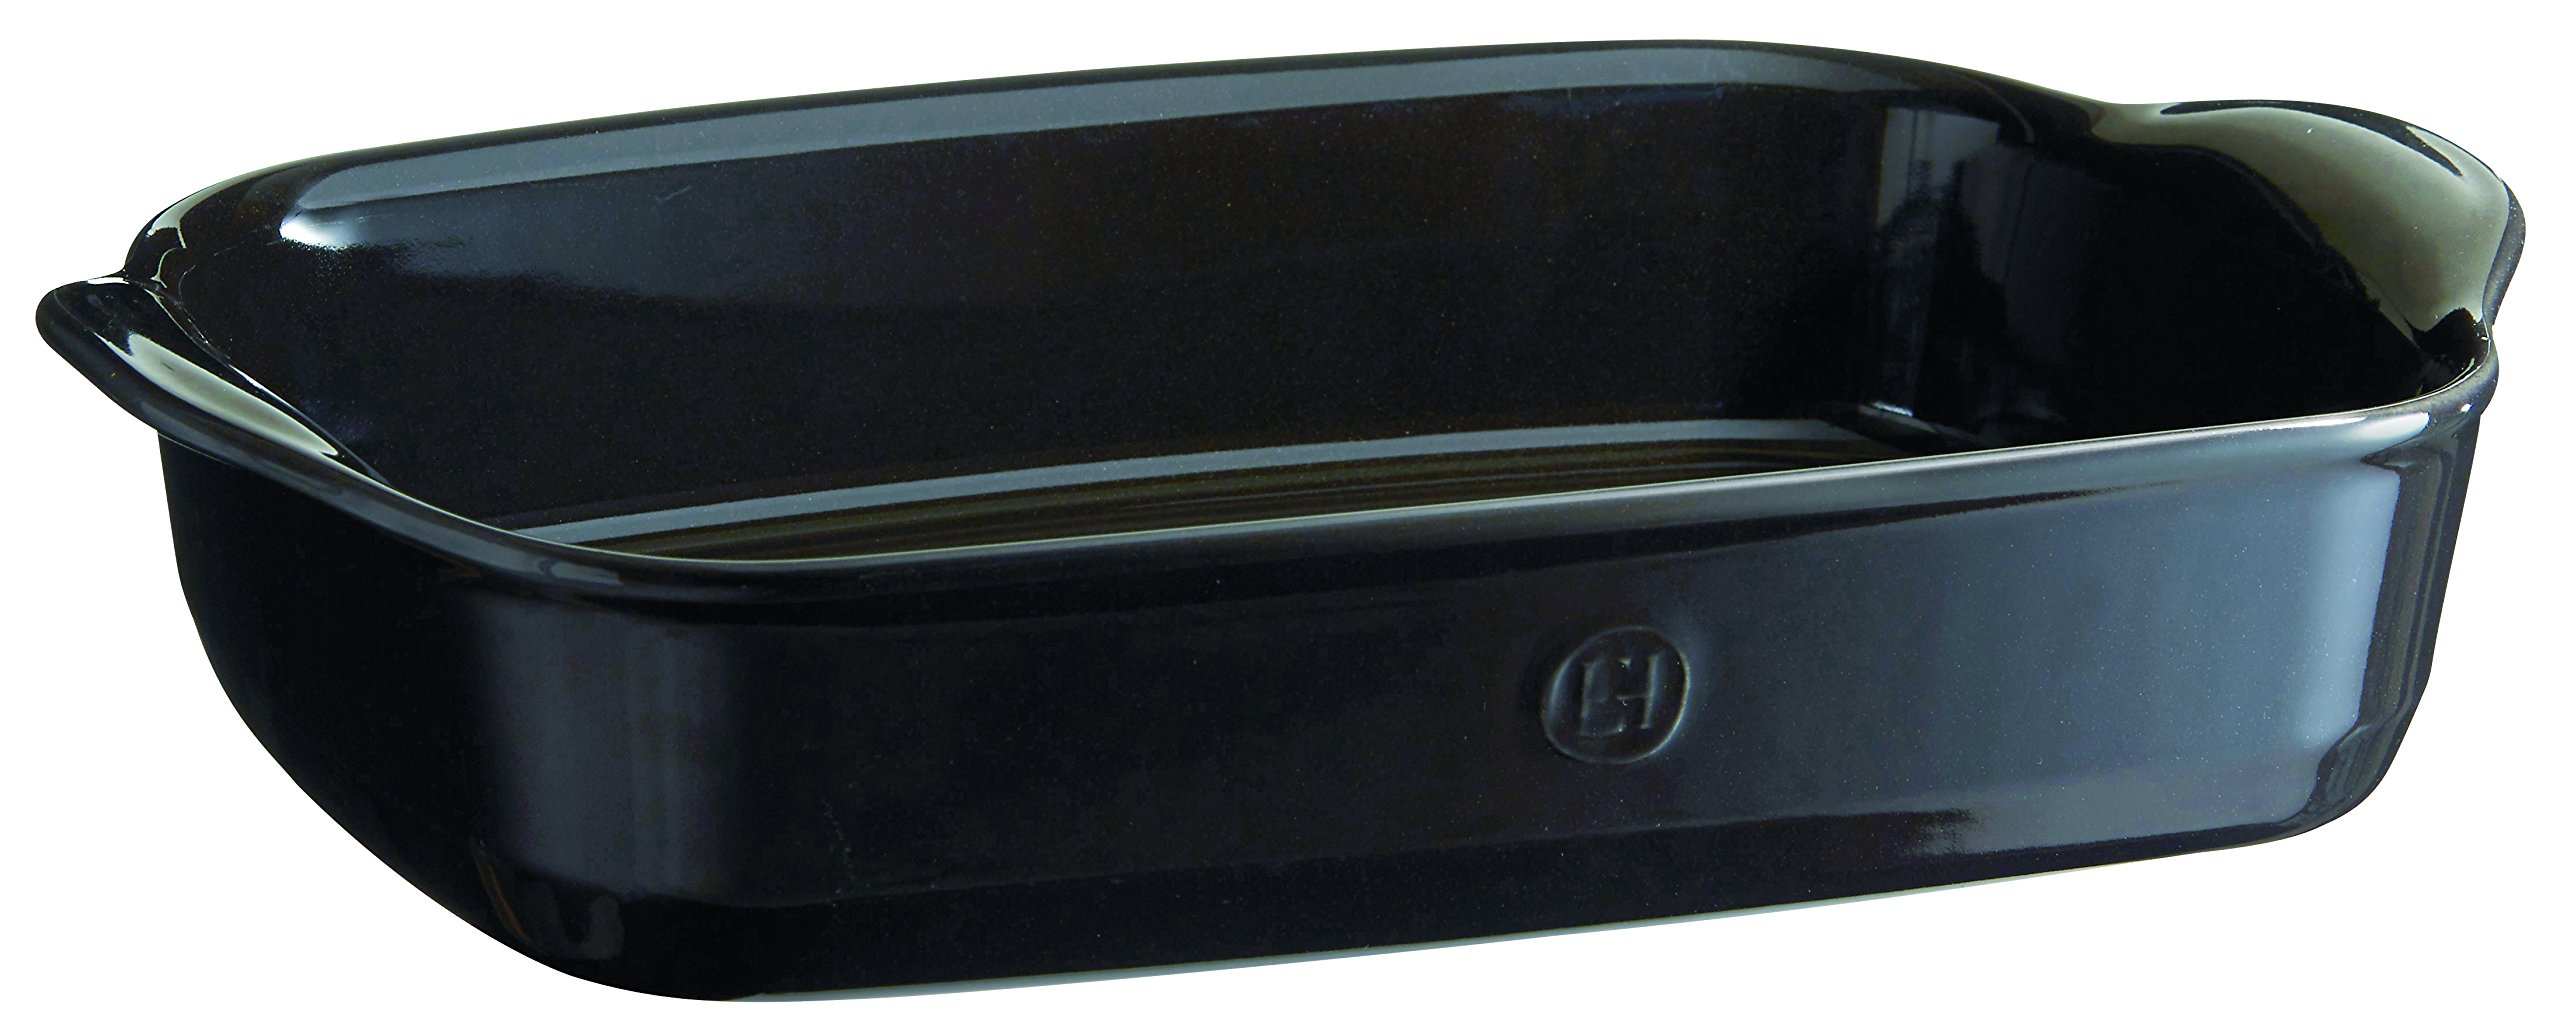 Emile Henry 799652 France Ovenware Ultime Rectangular Baking Dish, 14.2 x 9.1, Charcoal by Emile Henry